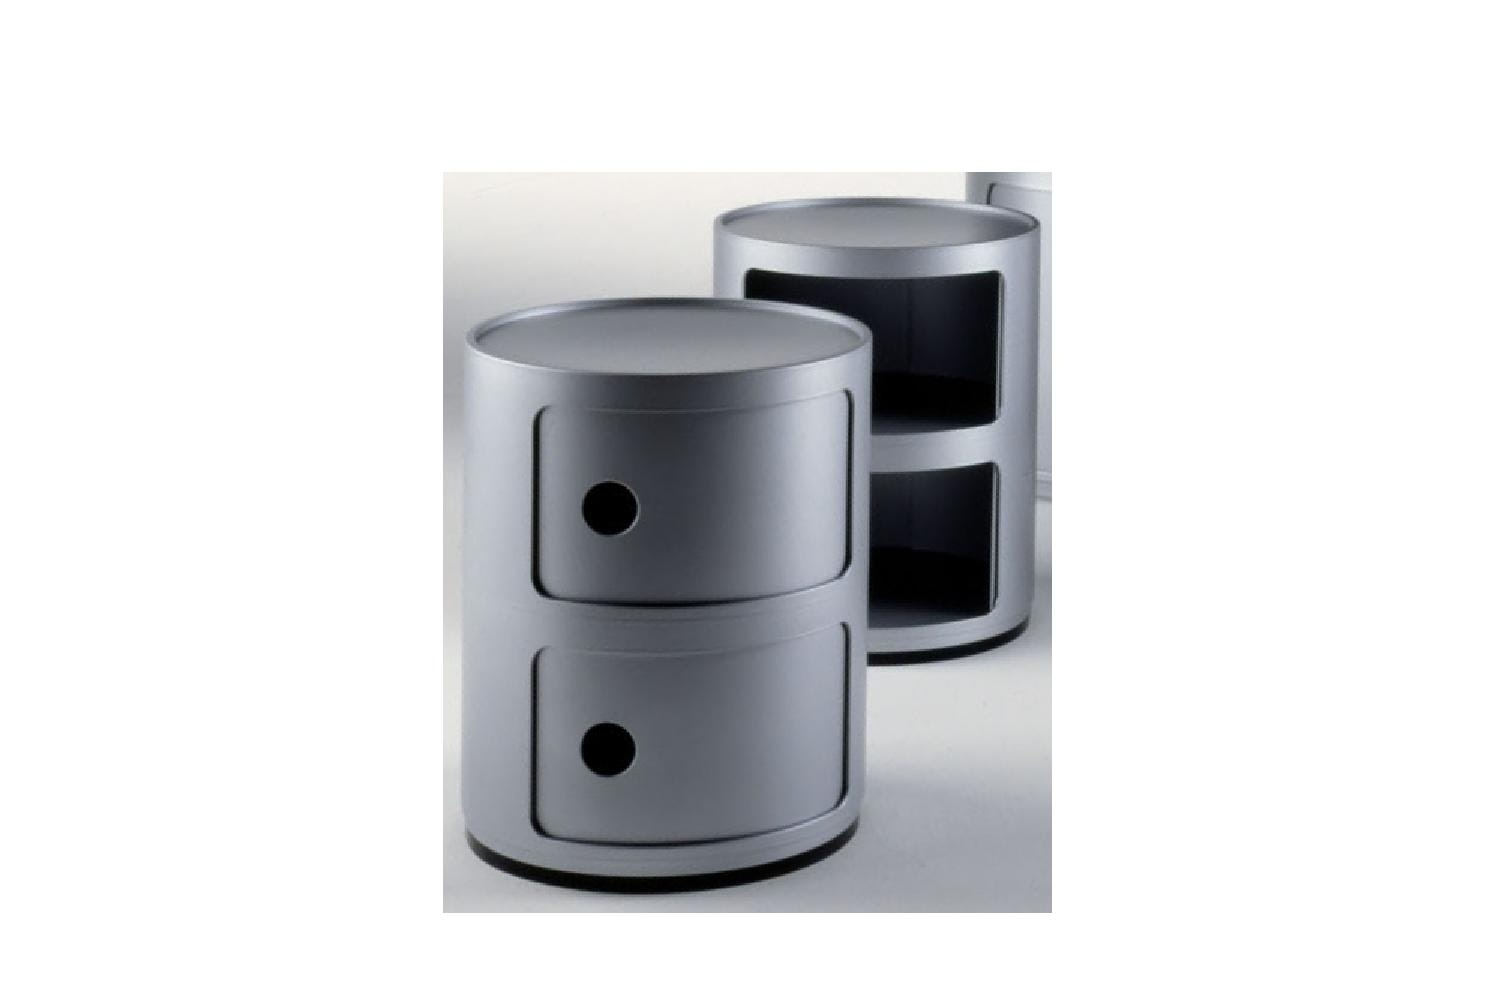 Componibili 2 Round in Silver Elements by Anna Castelli Ferrieri for Kartell